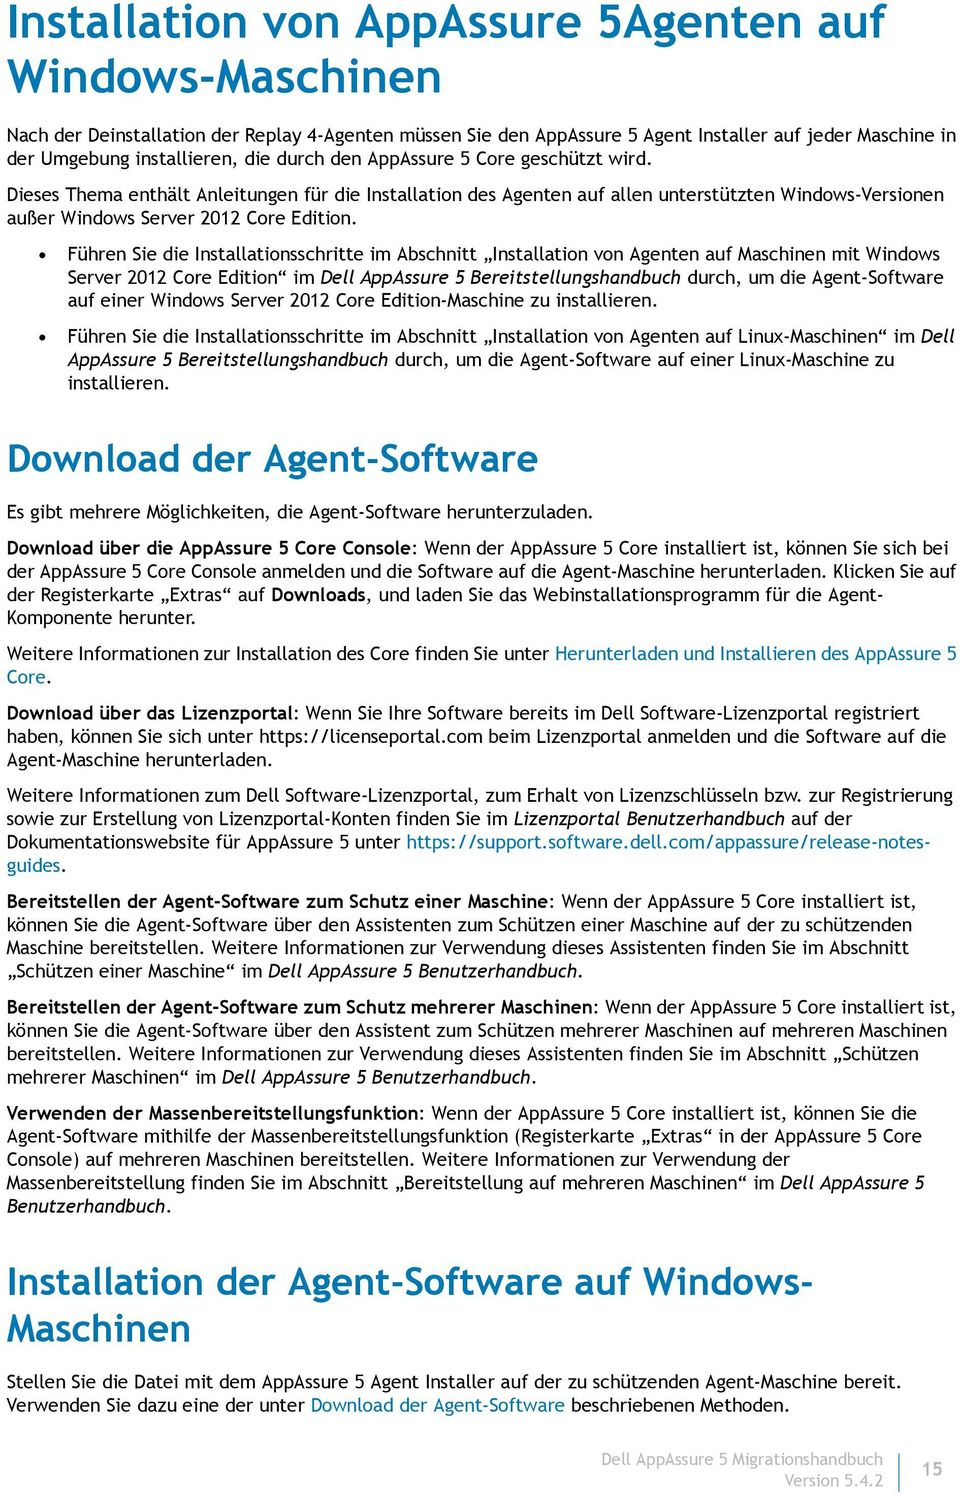 Führen Sie die Installationsschritte im Abschnitt Installation von Agenten auf Maschinen mit Windows Server 2012 Core Edition im Dell AppAssure 5 Bereitstellungshandbuch durch, um die Agent-Software